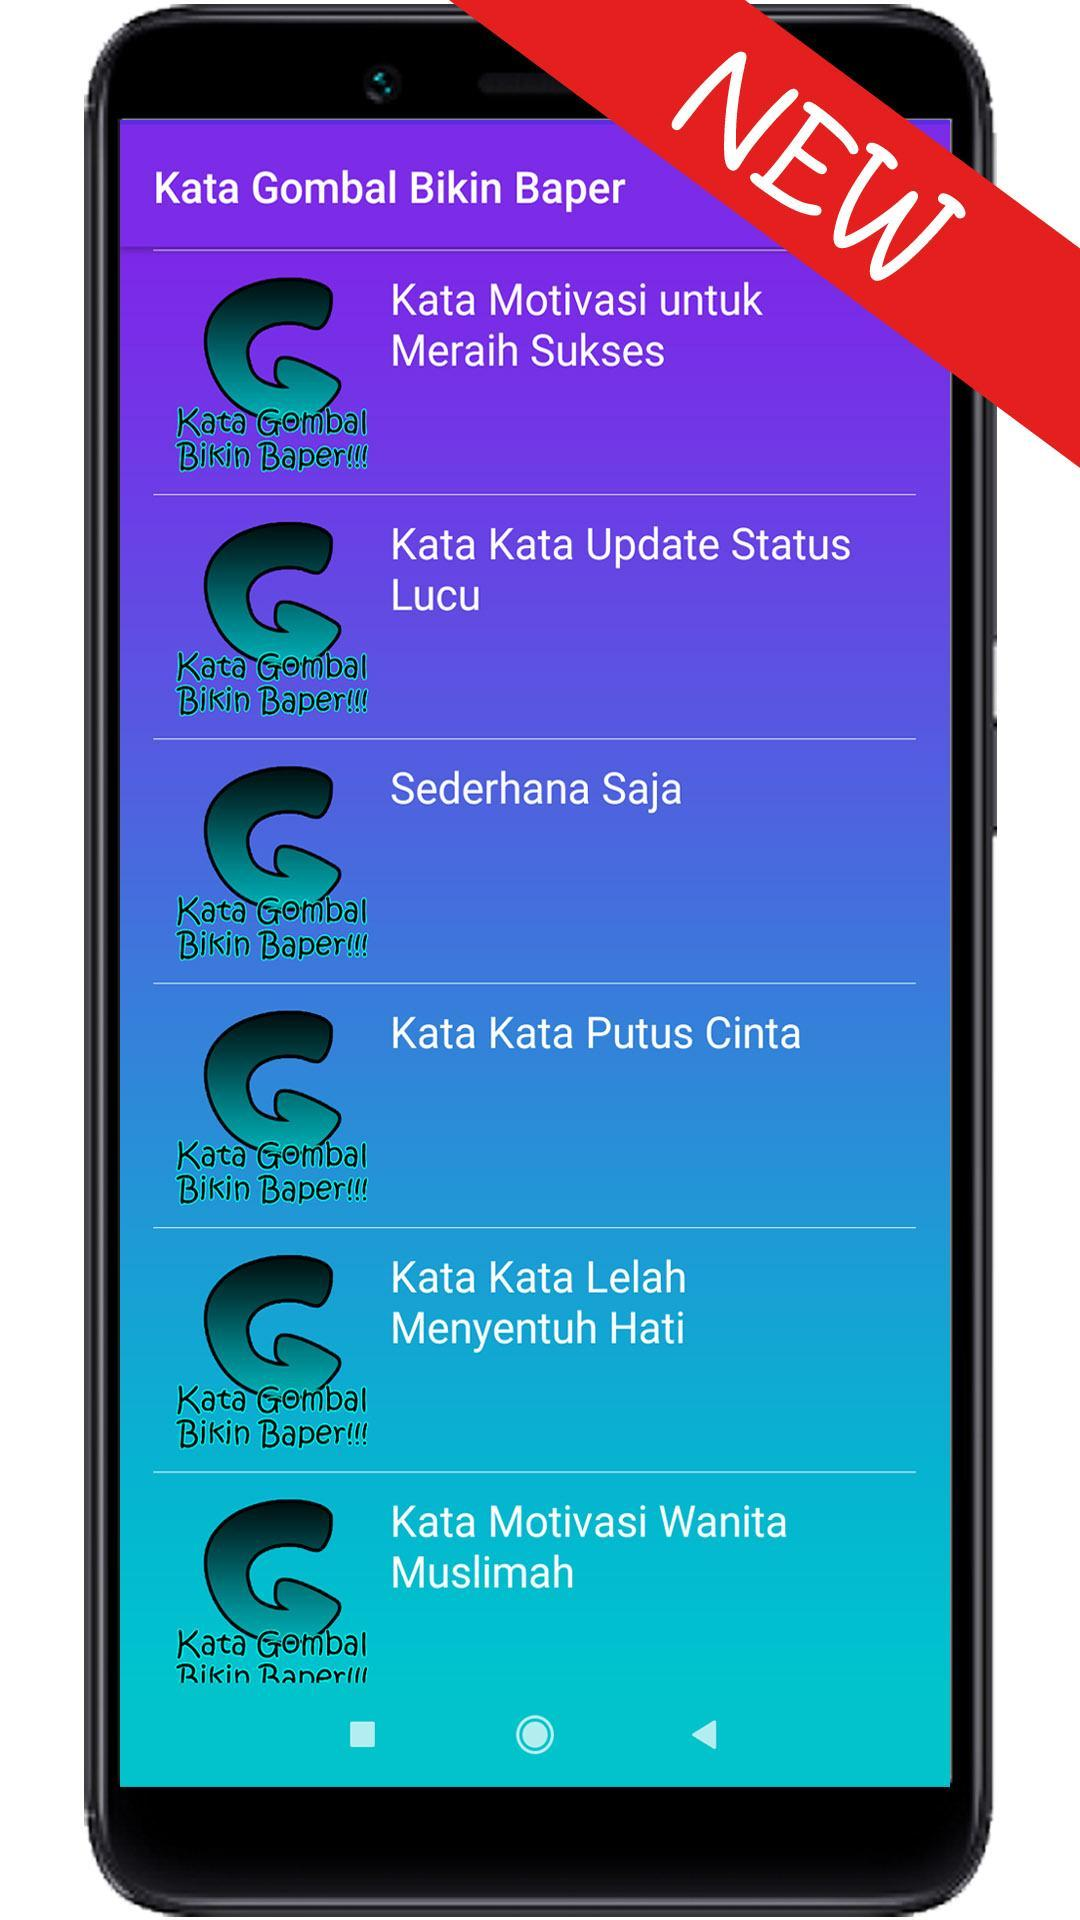 Kata Gombal Bikin Baper For Android Apk Download